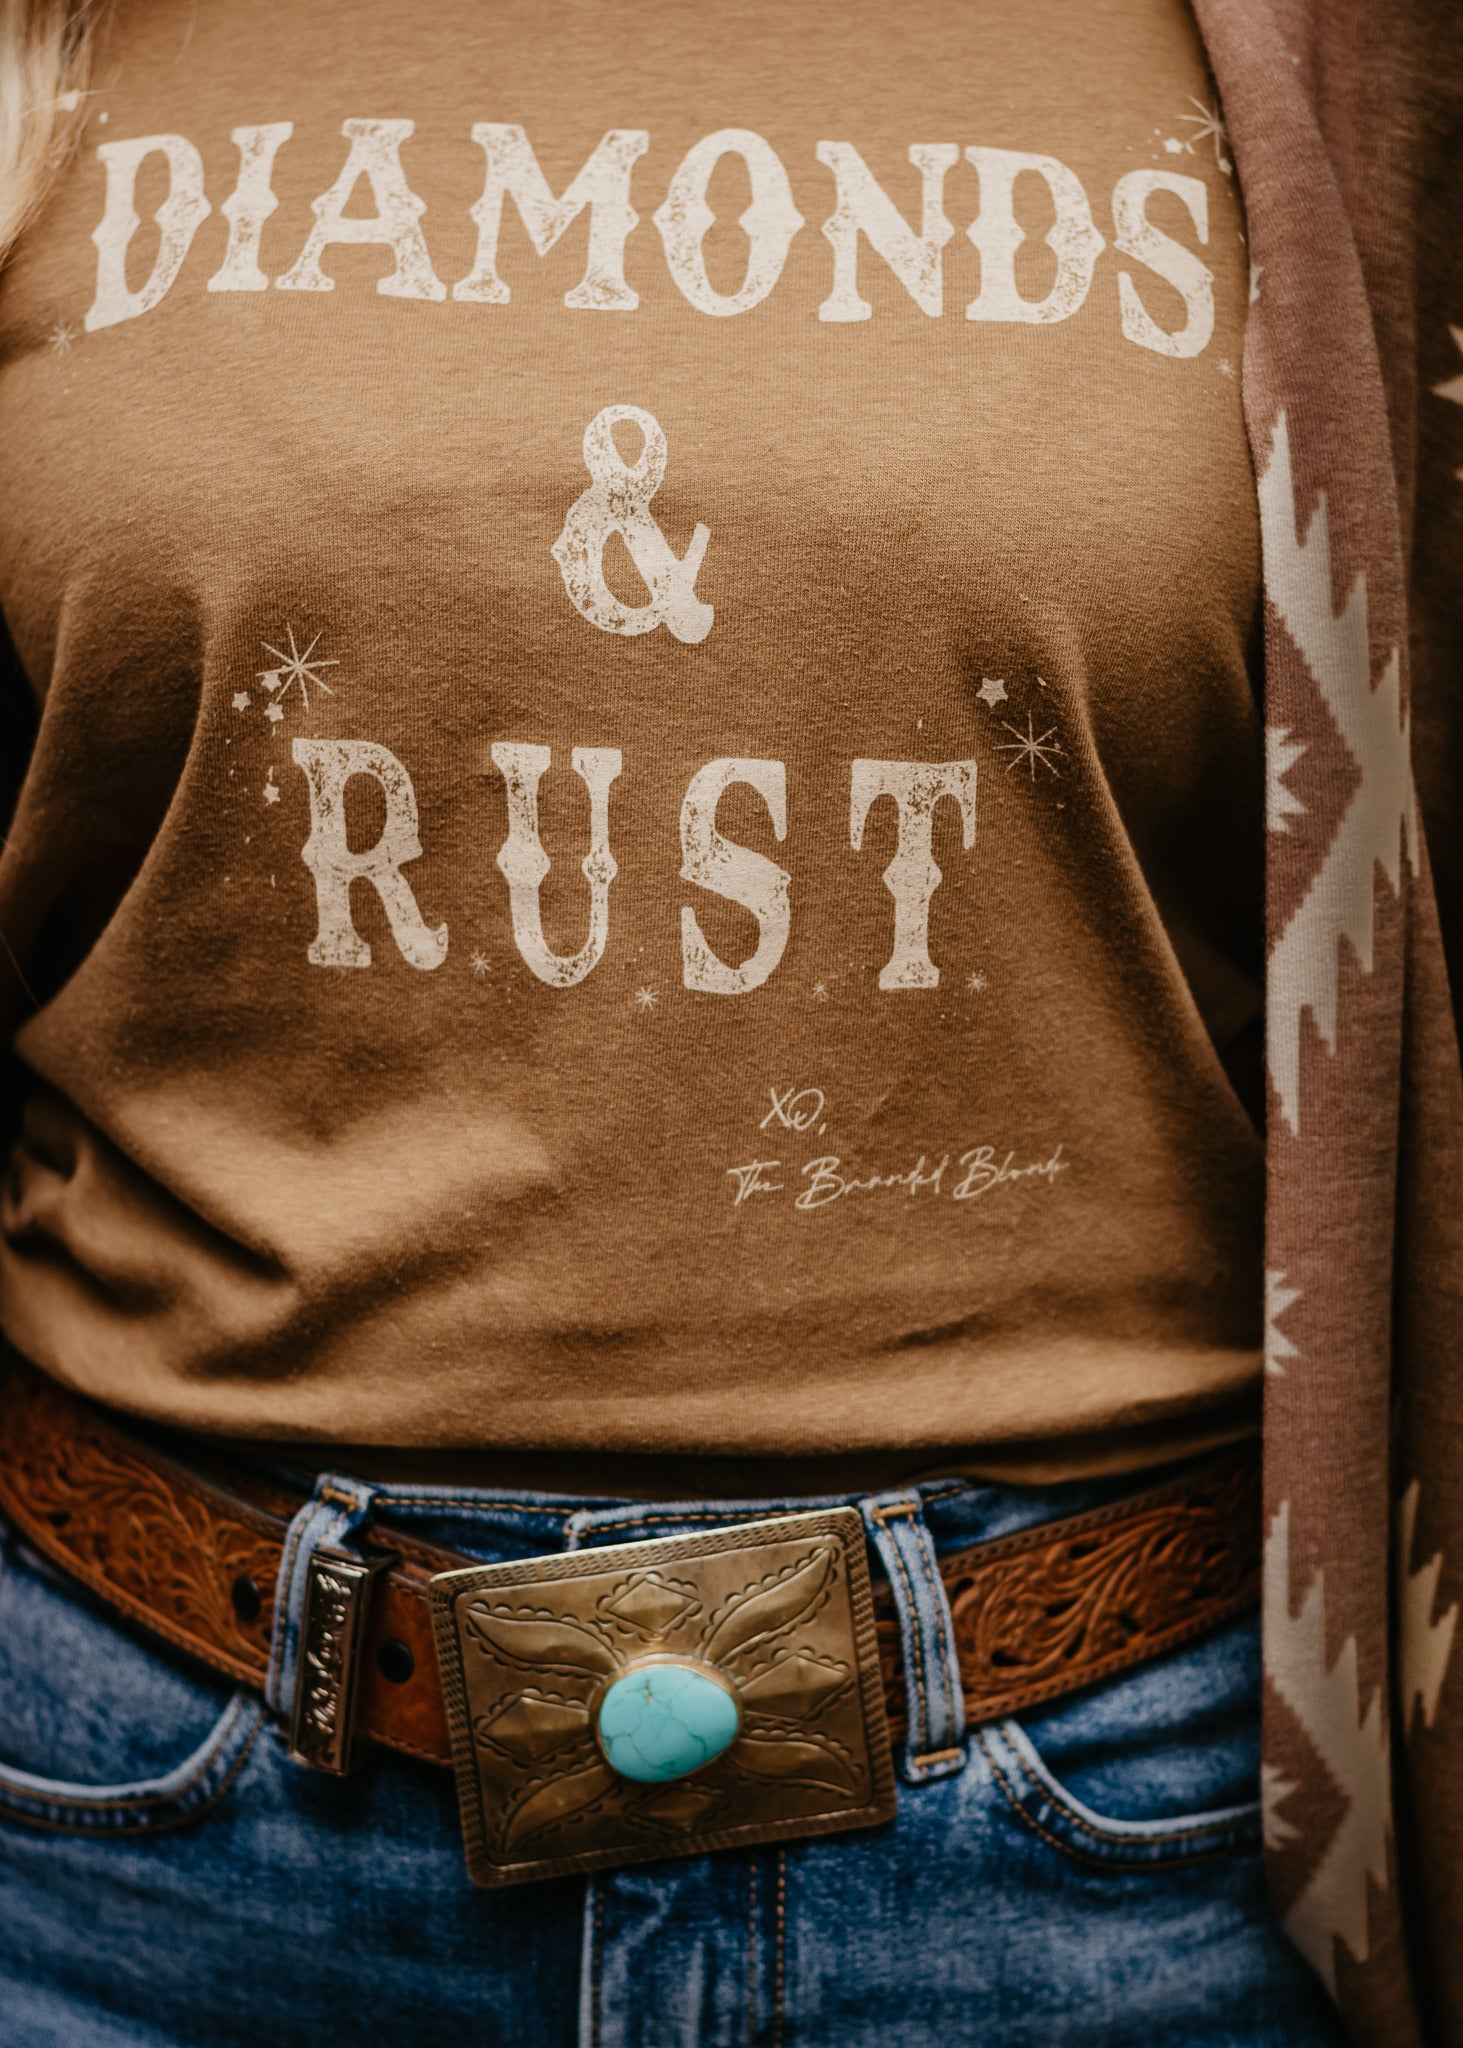 Diamonds & Rust Tee